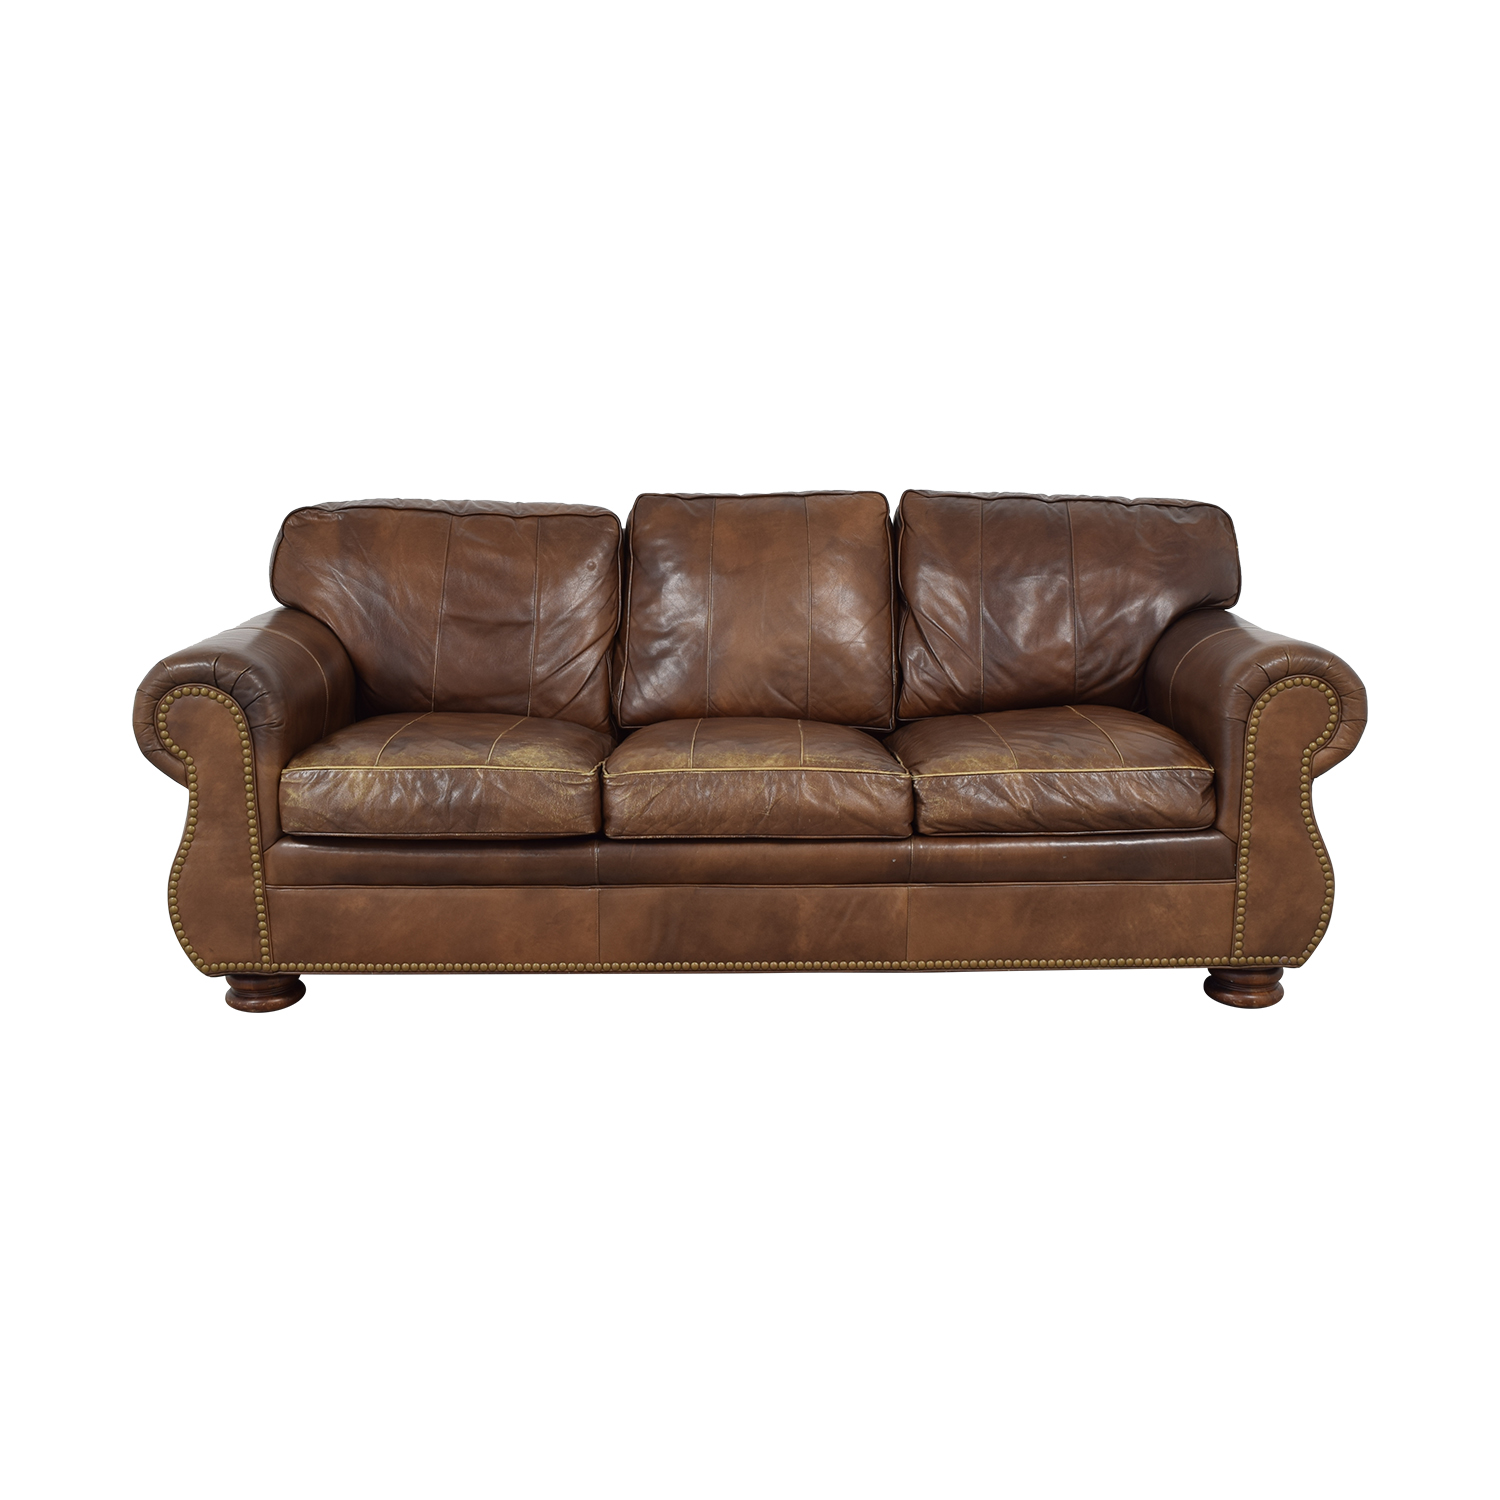 buy Hancock and Moore Nailhead Sofa Hancock and Moore Classic Sofas